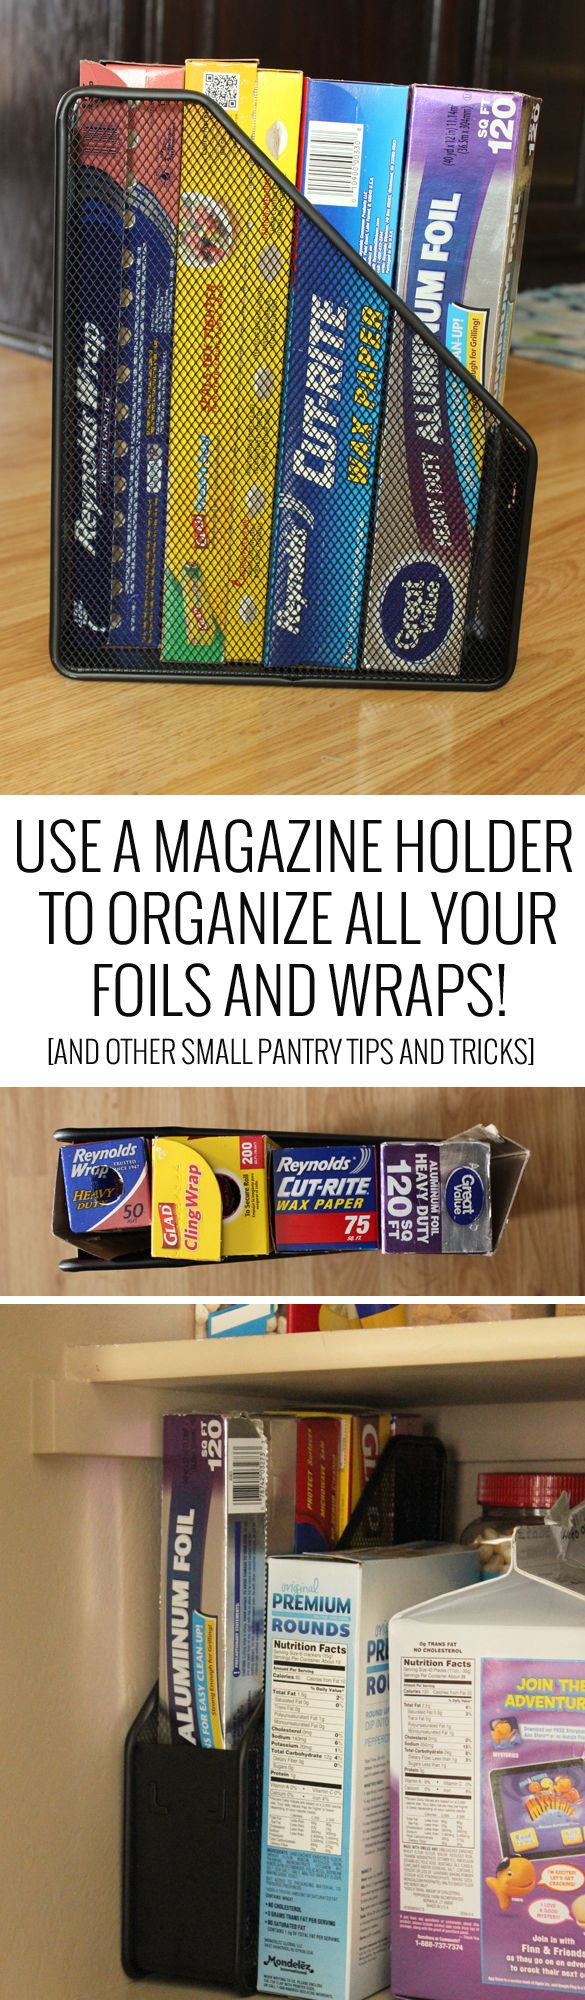 Use a magazine holder to organize all your foils and wraps! (And other awesome…